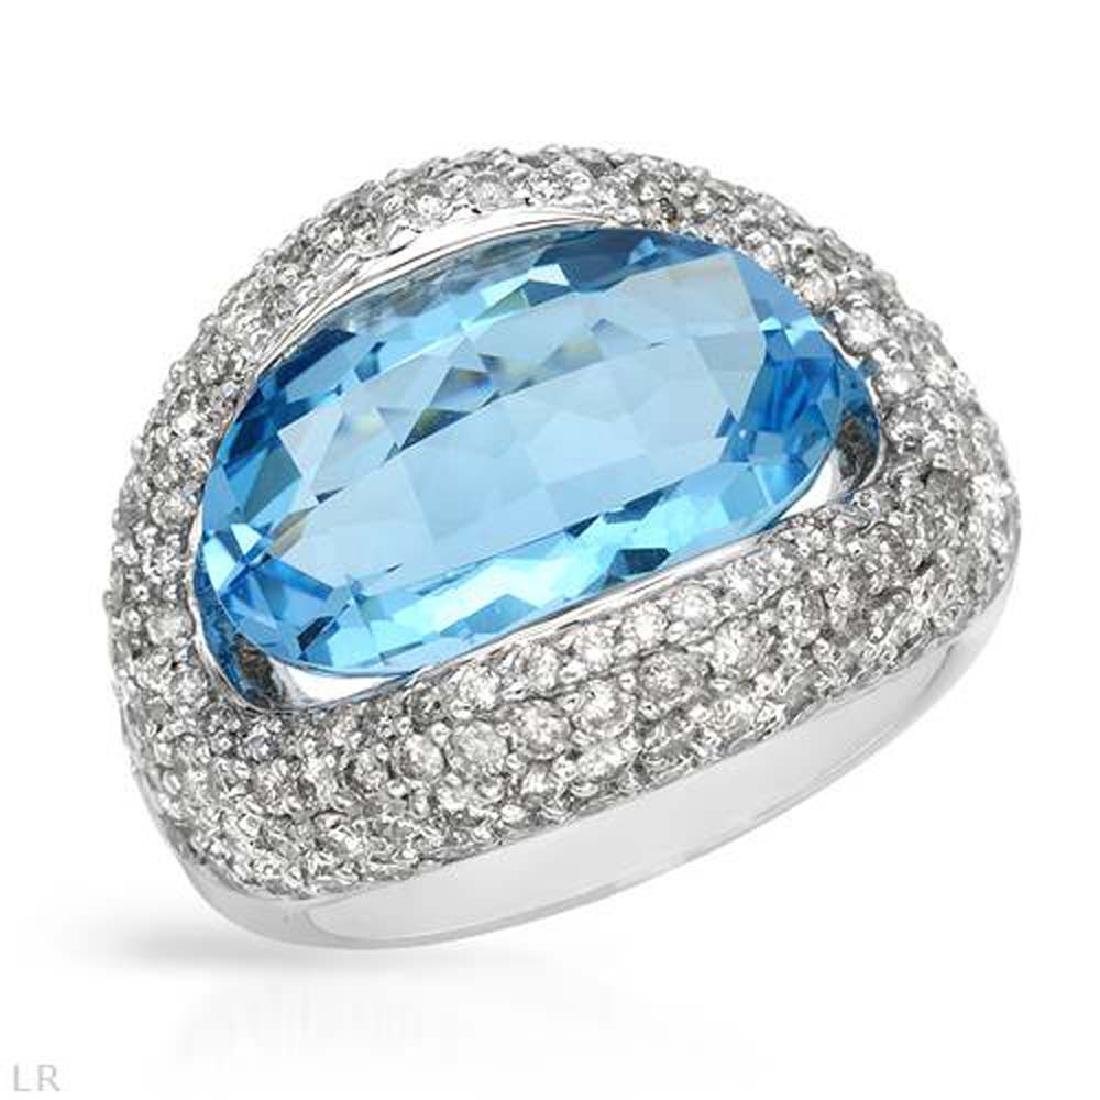 14KT White Gold 8.58ct Blue Topaz and Diamond Ring